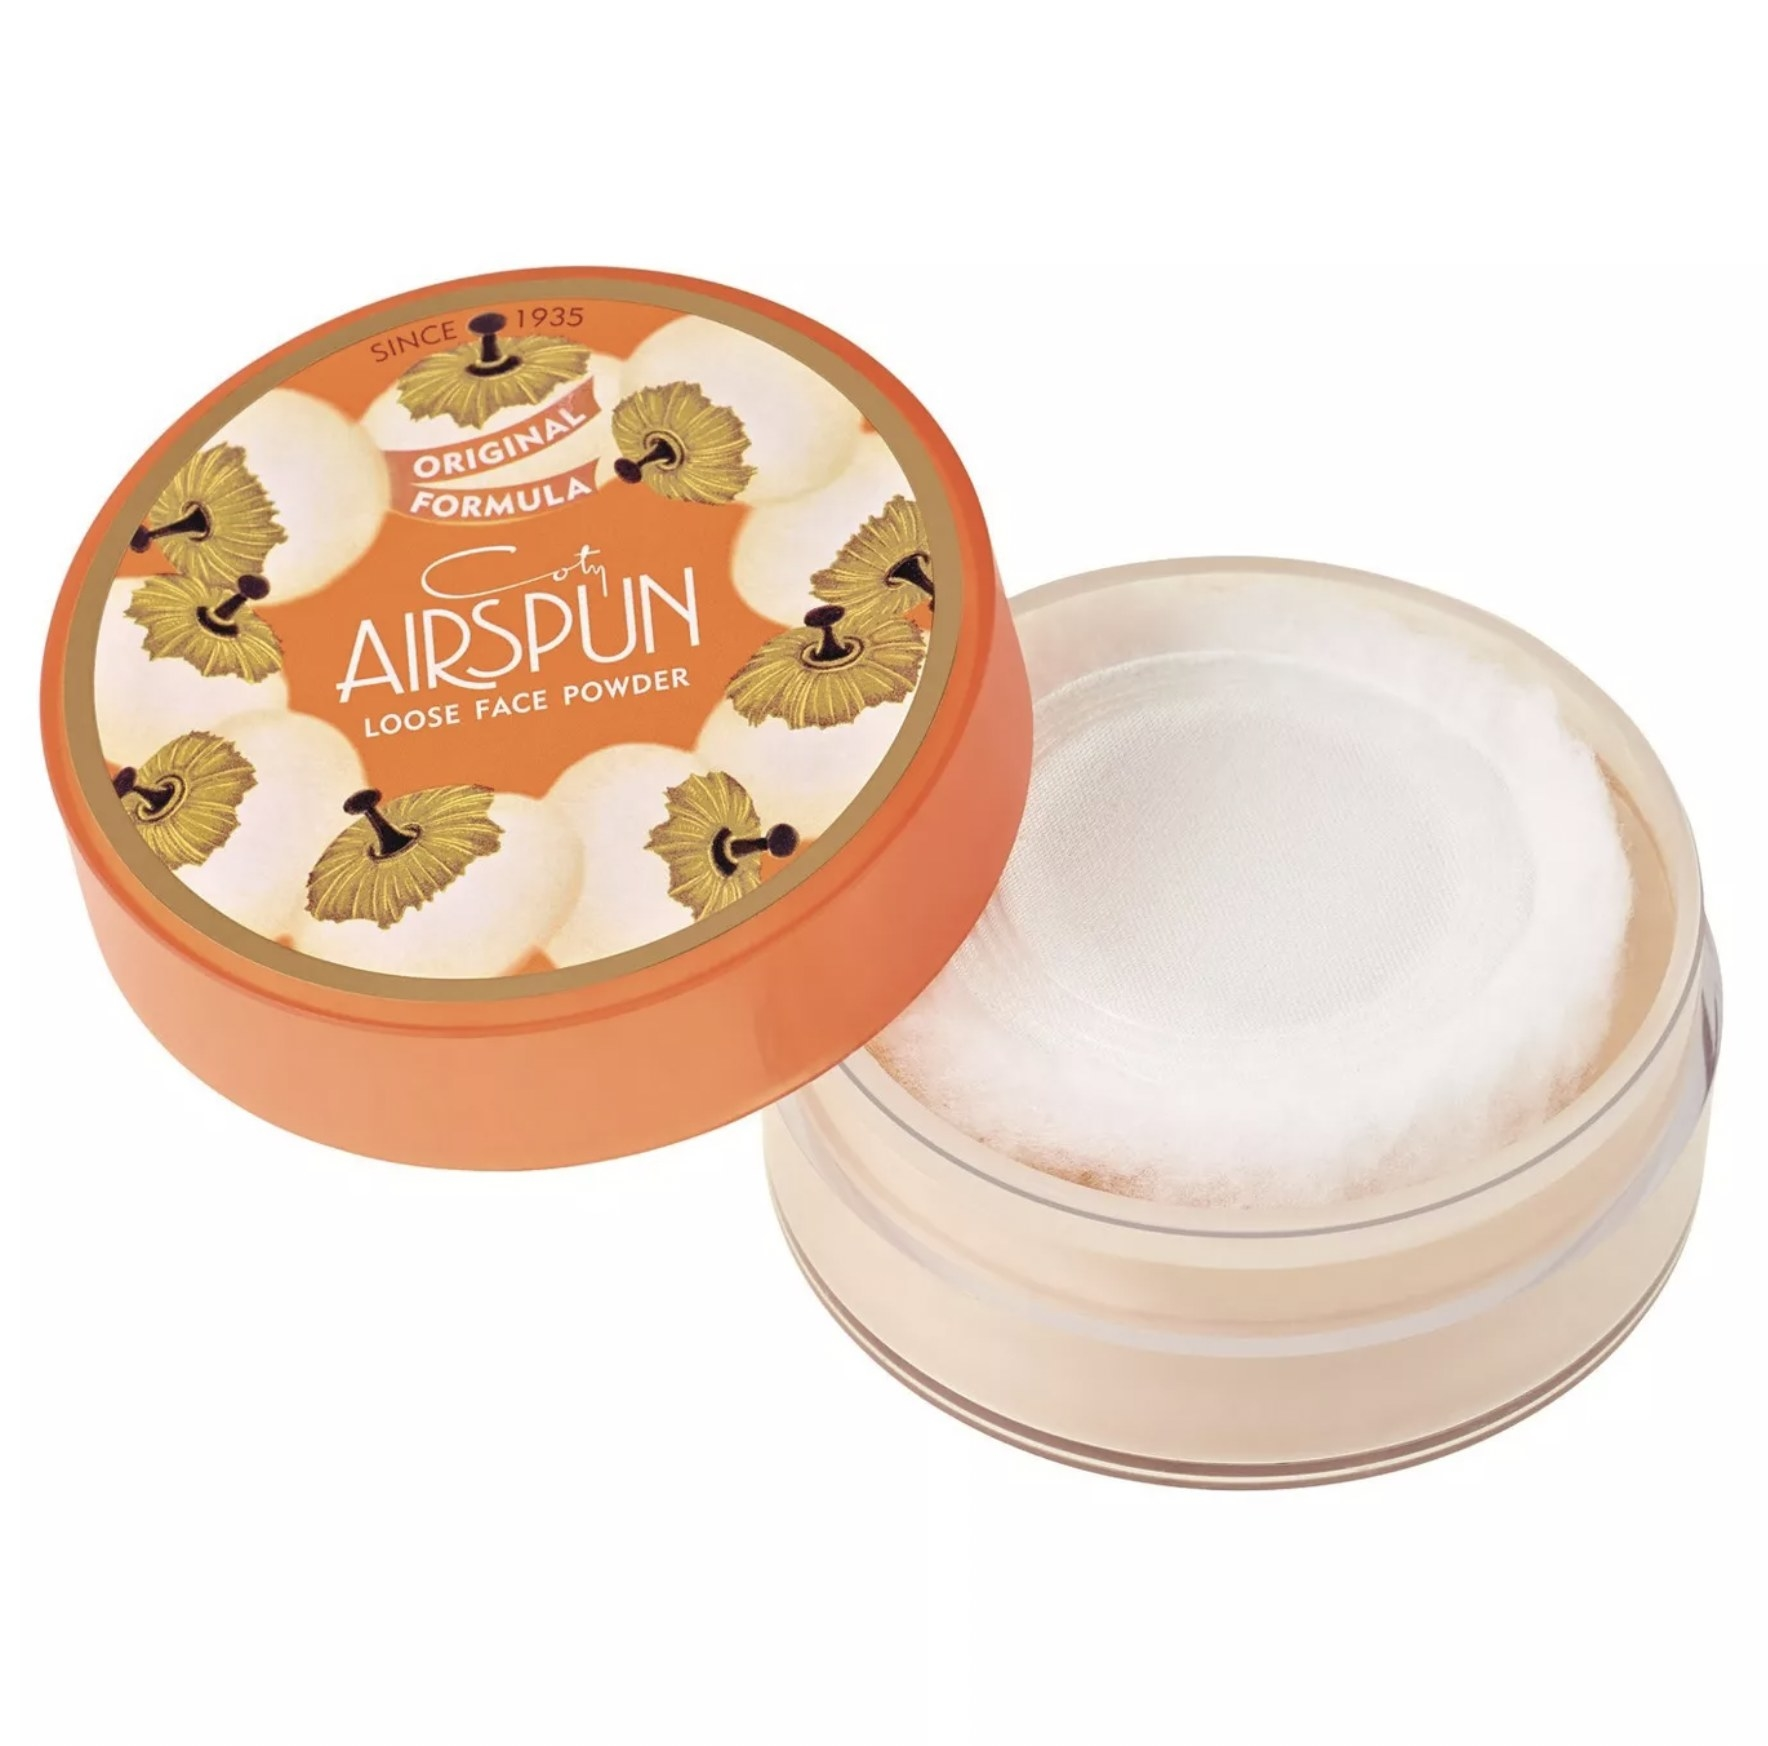 Opened airspun powder against white background